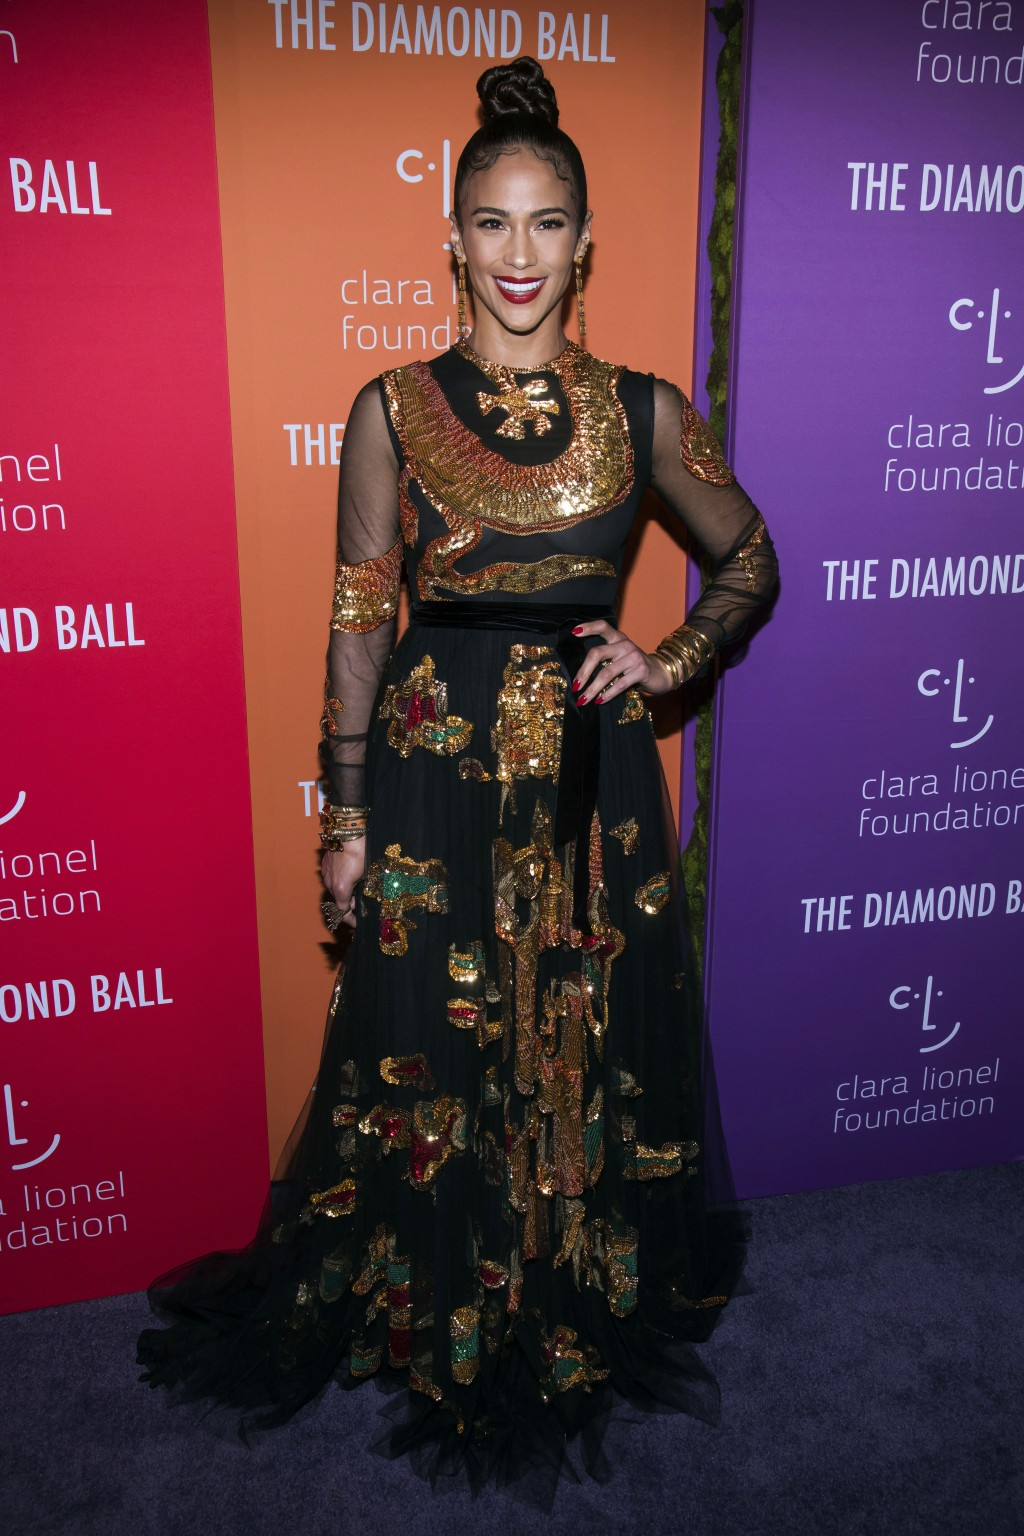 Paula Patton attends the 5th annual Diamond Ball benefit gala at Cipriani Wall Street on Thursday, Sept. 12, 2019, in New York. (Photo by Charles Syke...